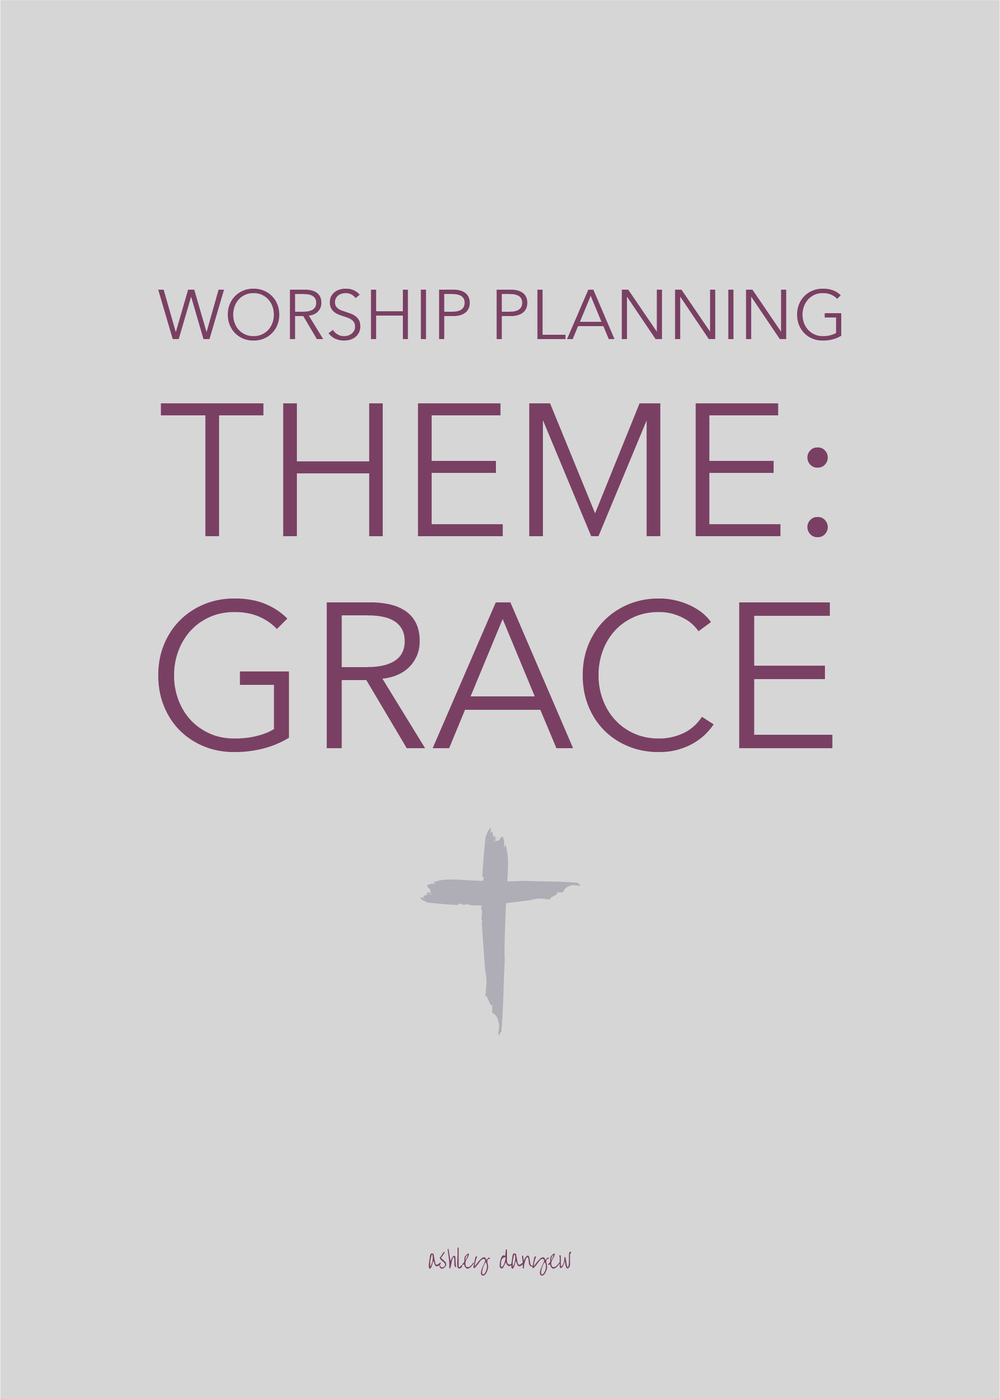 Worship Planning Theme - Grace-12.png